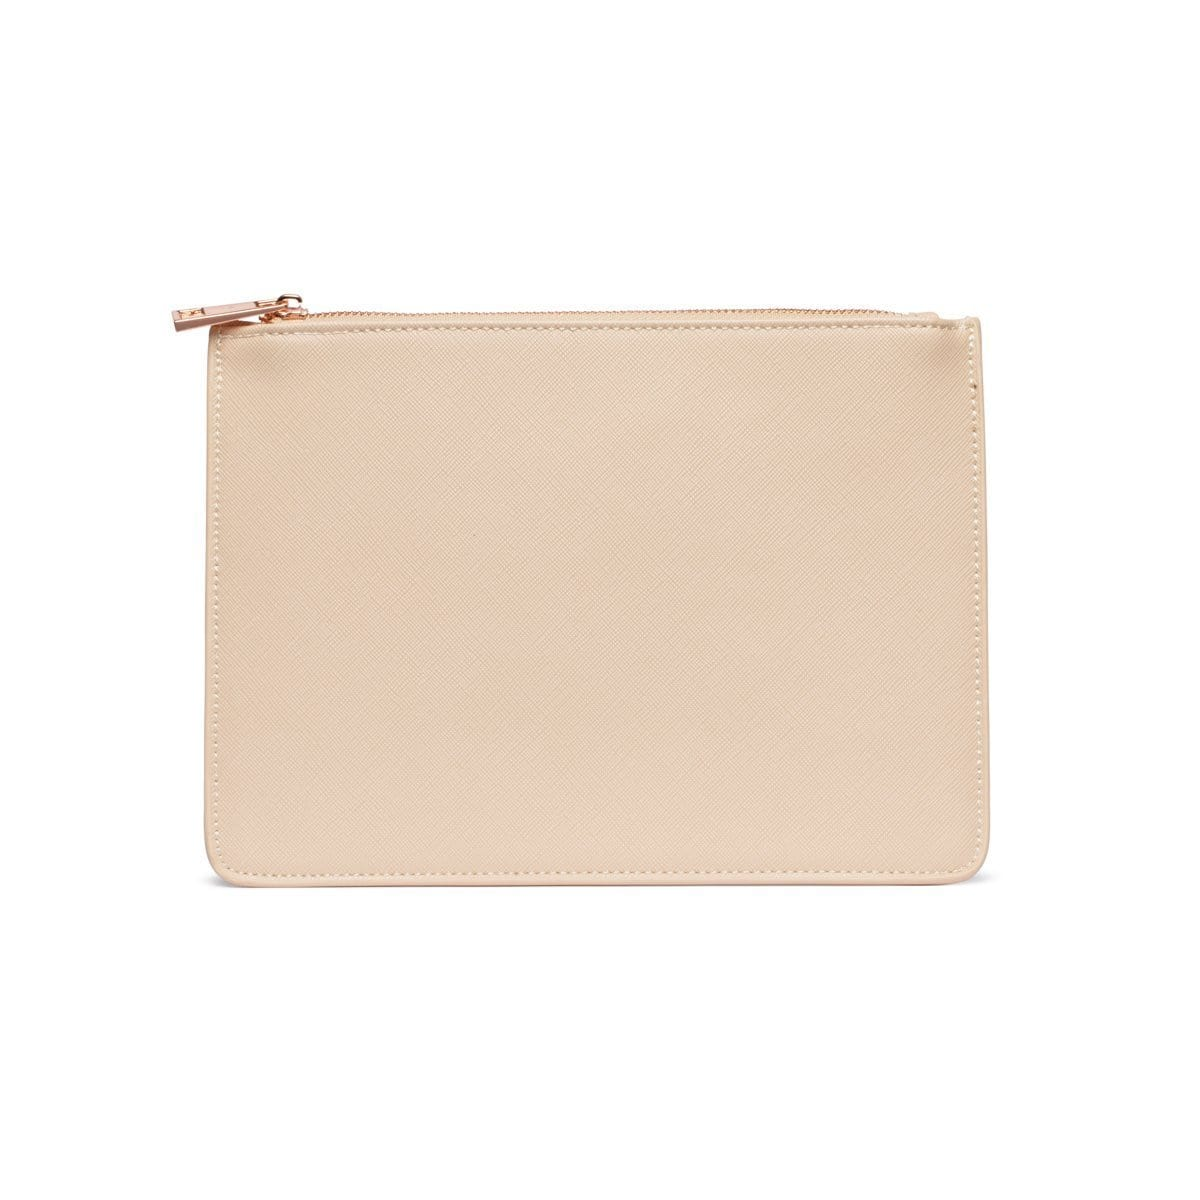 Sand Nude Sienna Pouch (PERSONALISE ME!)